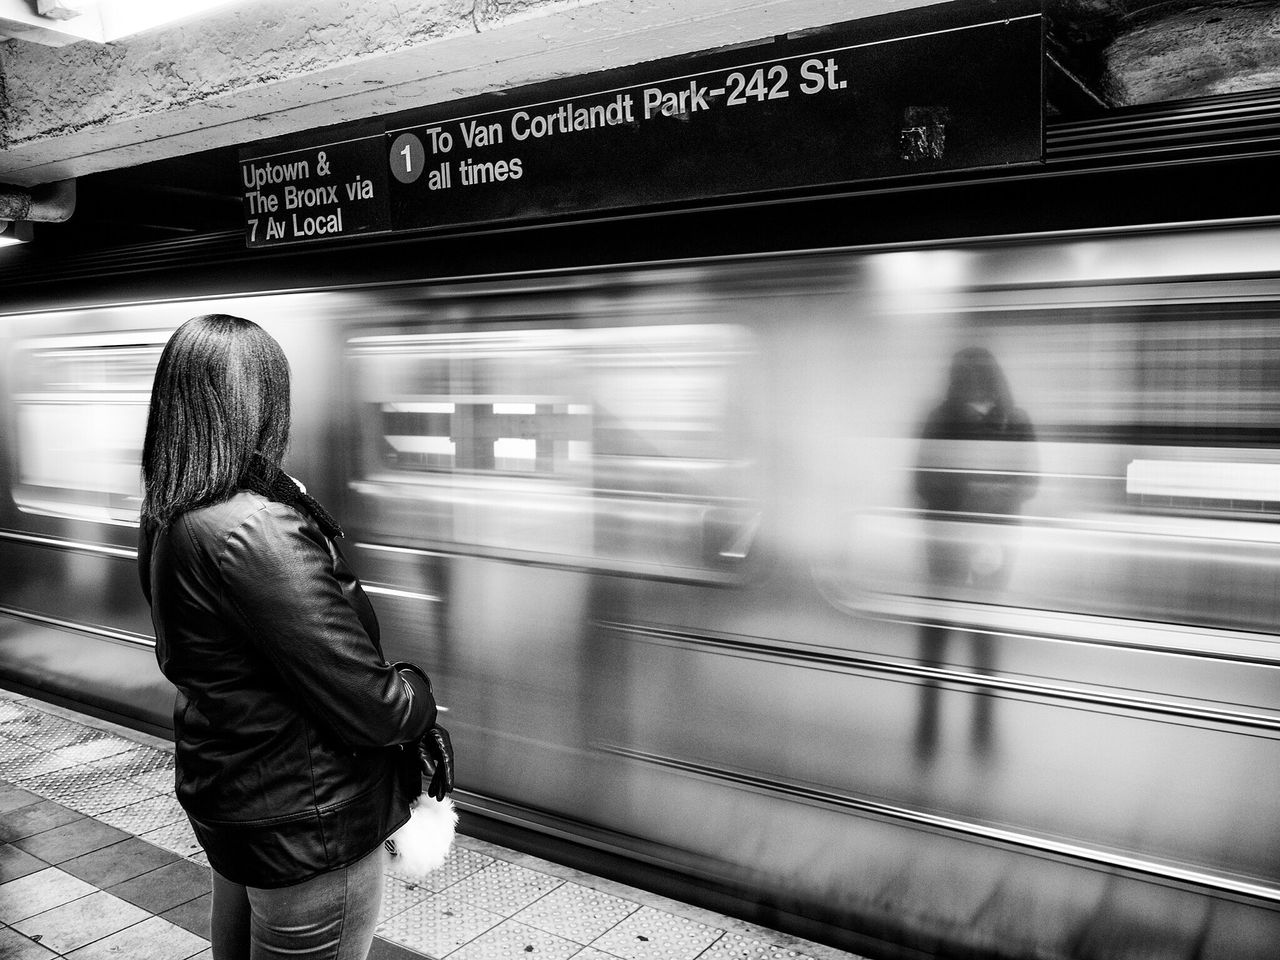 Woman Standing In Front Of Moving Subway Train At Platform